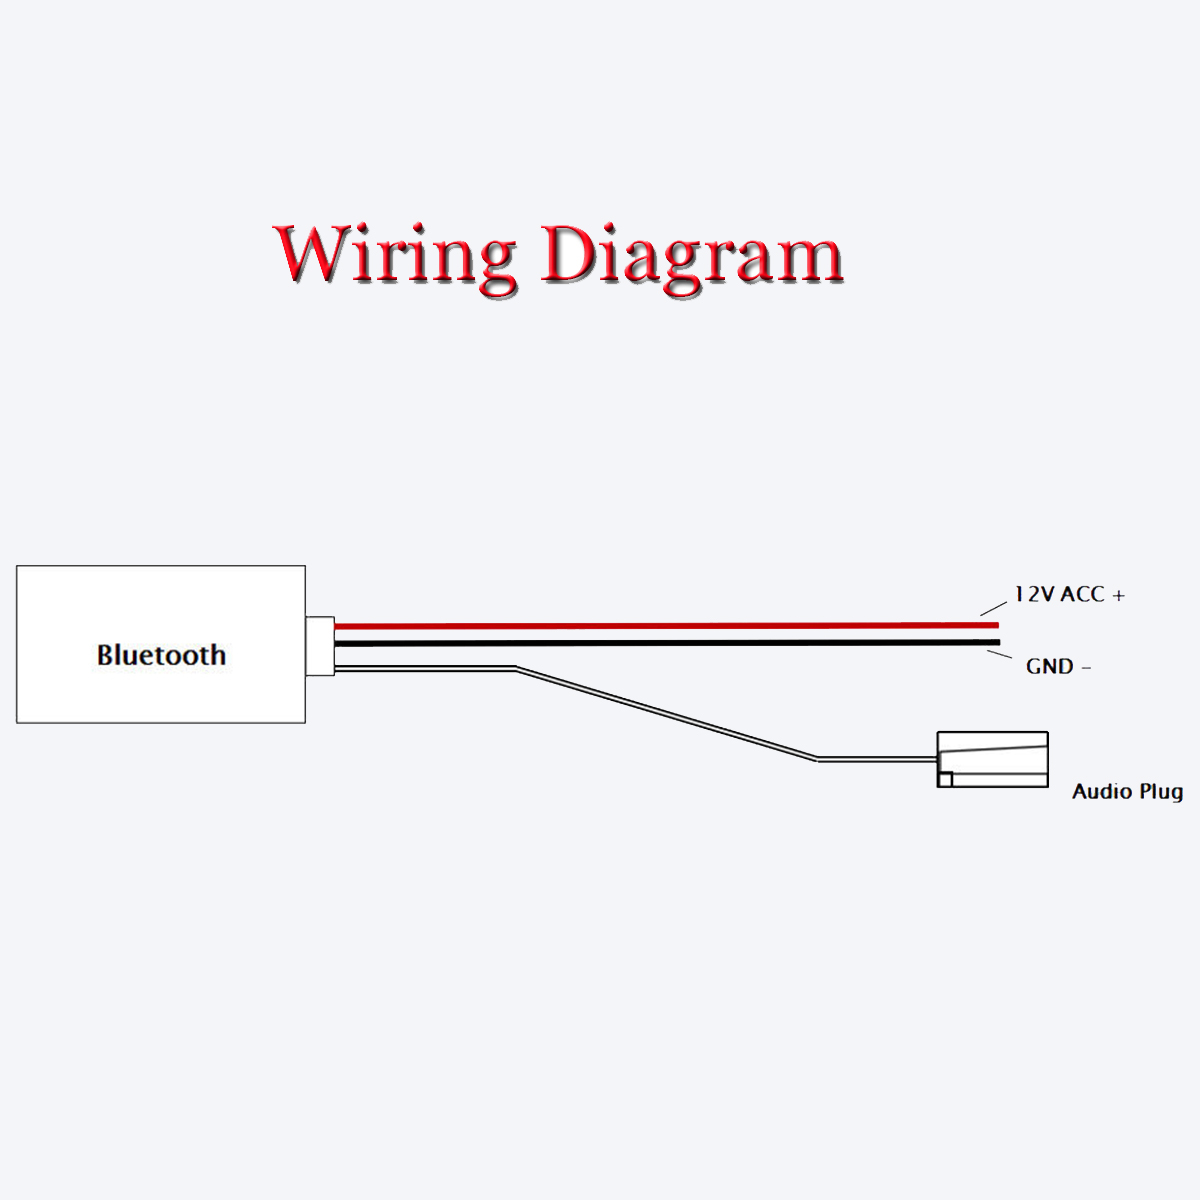 Bmw 3 Series E90 Wiring Diagram | Wiring Liry Hmsl Wiring Diagram on